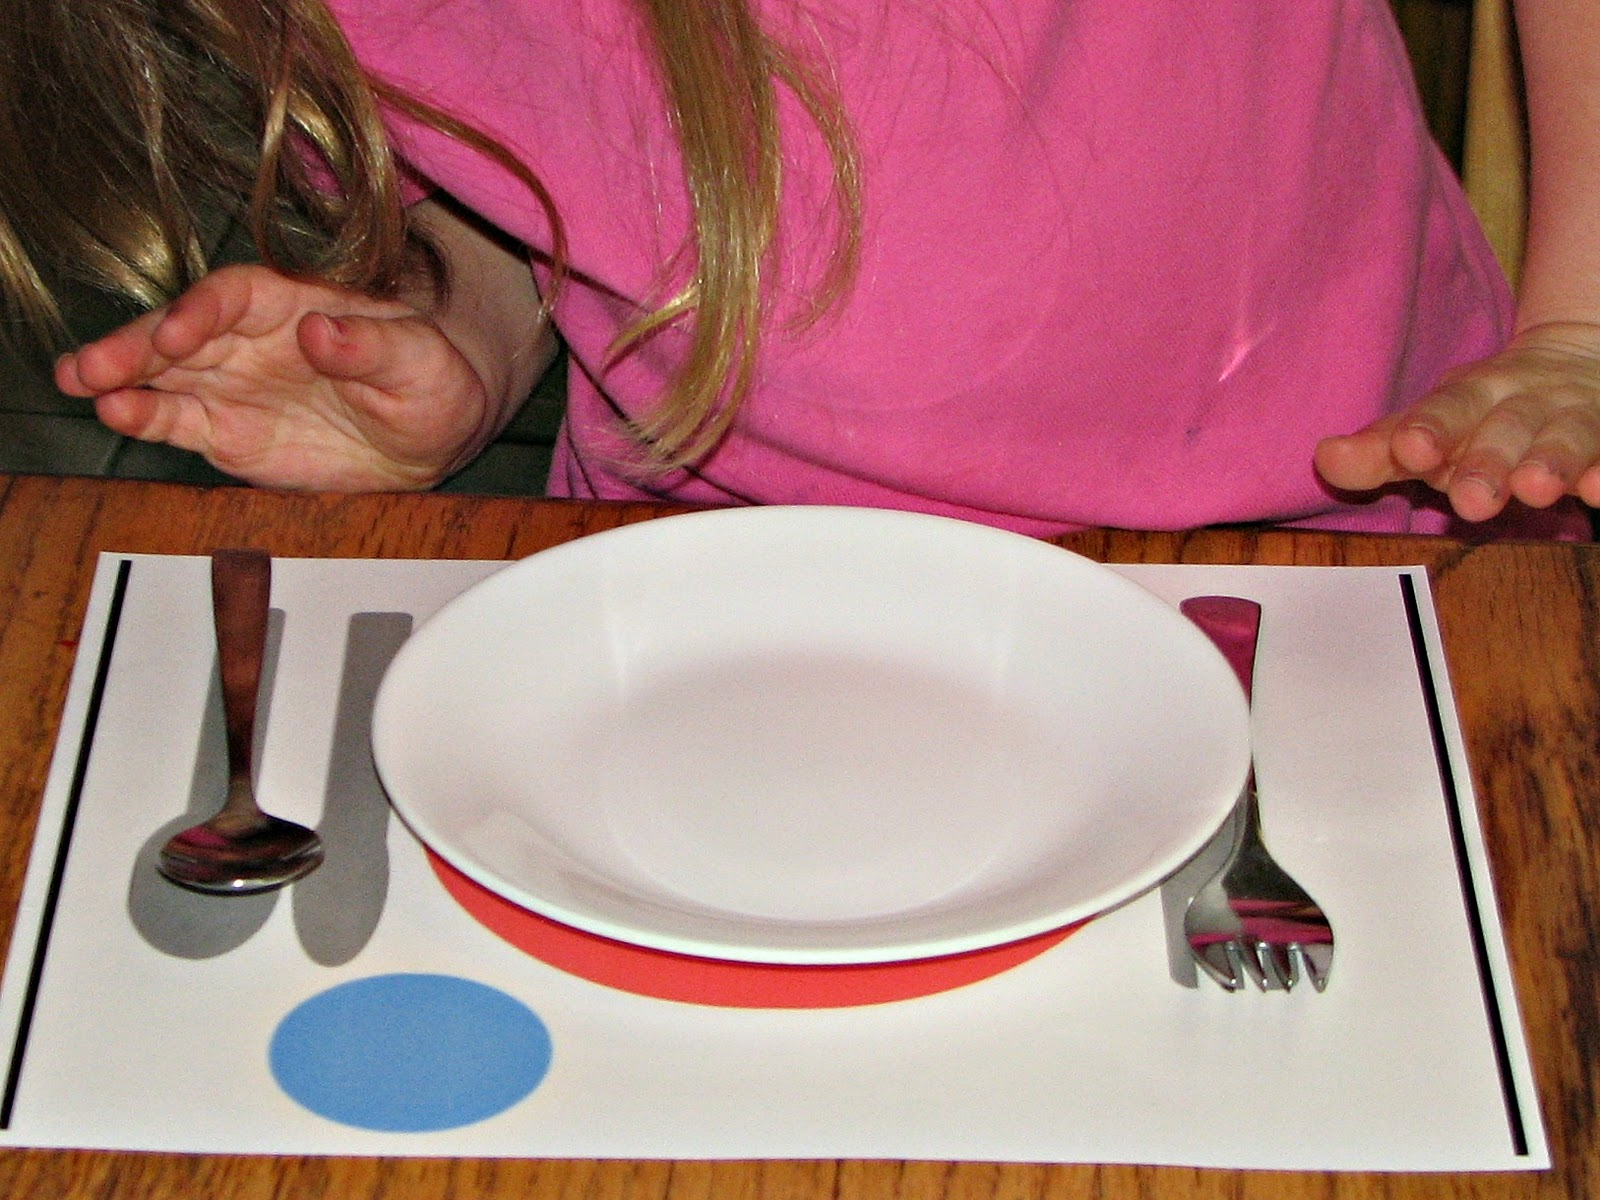 She Has Also Been Loving Setting Her Own Spot At The Table Using Placemat As A Guide